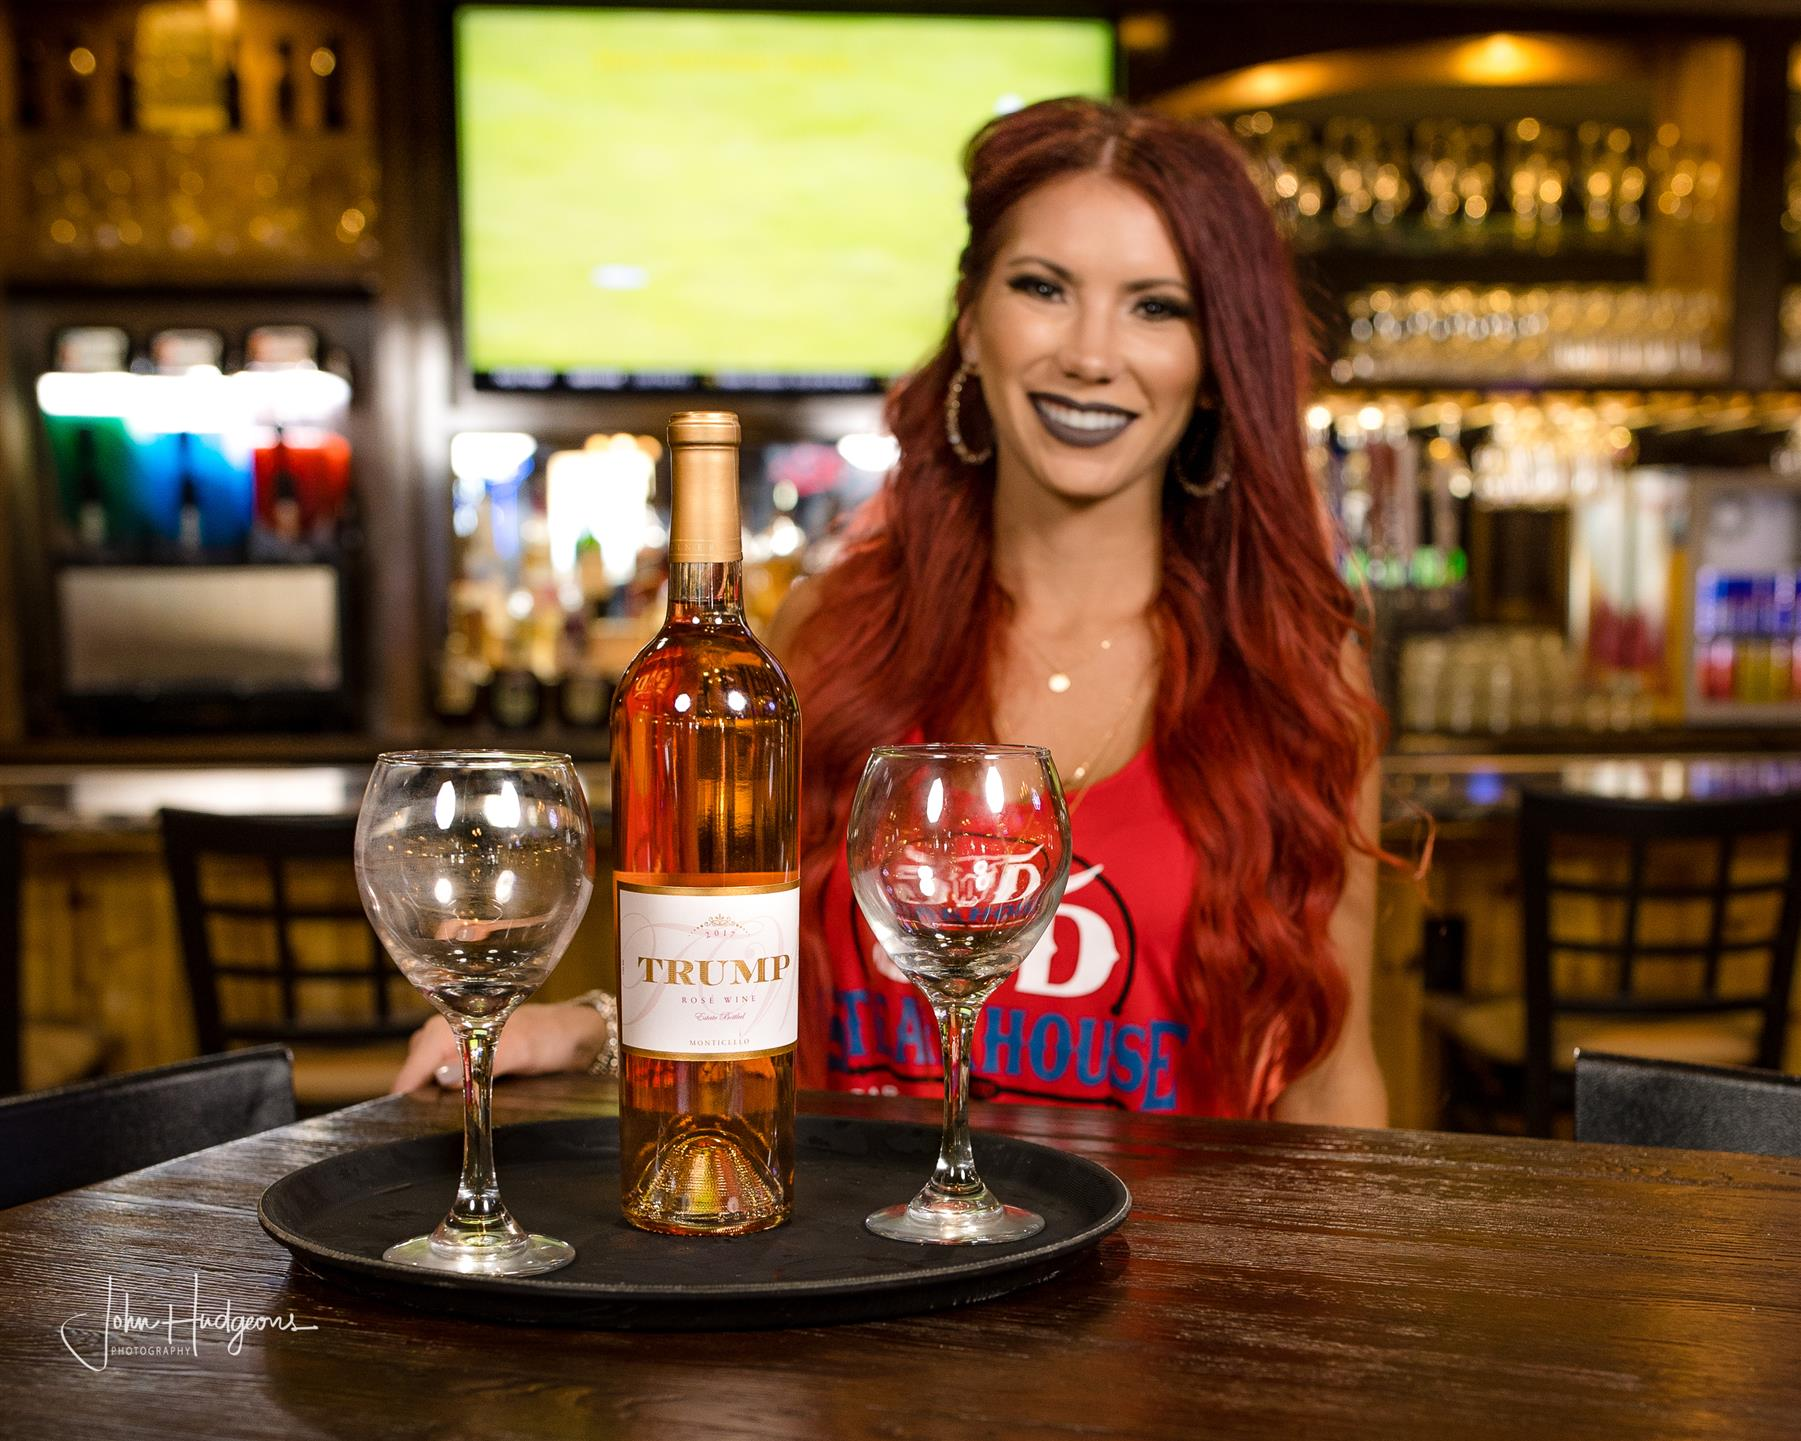 Cocktail waitress posing in front of bar table with serving tray and bottle of wine